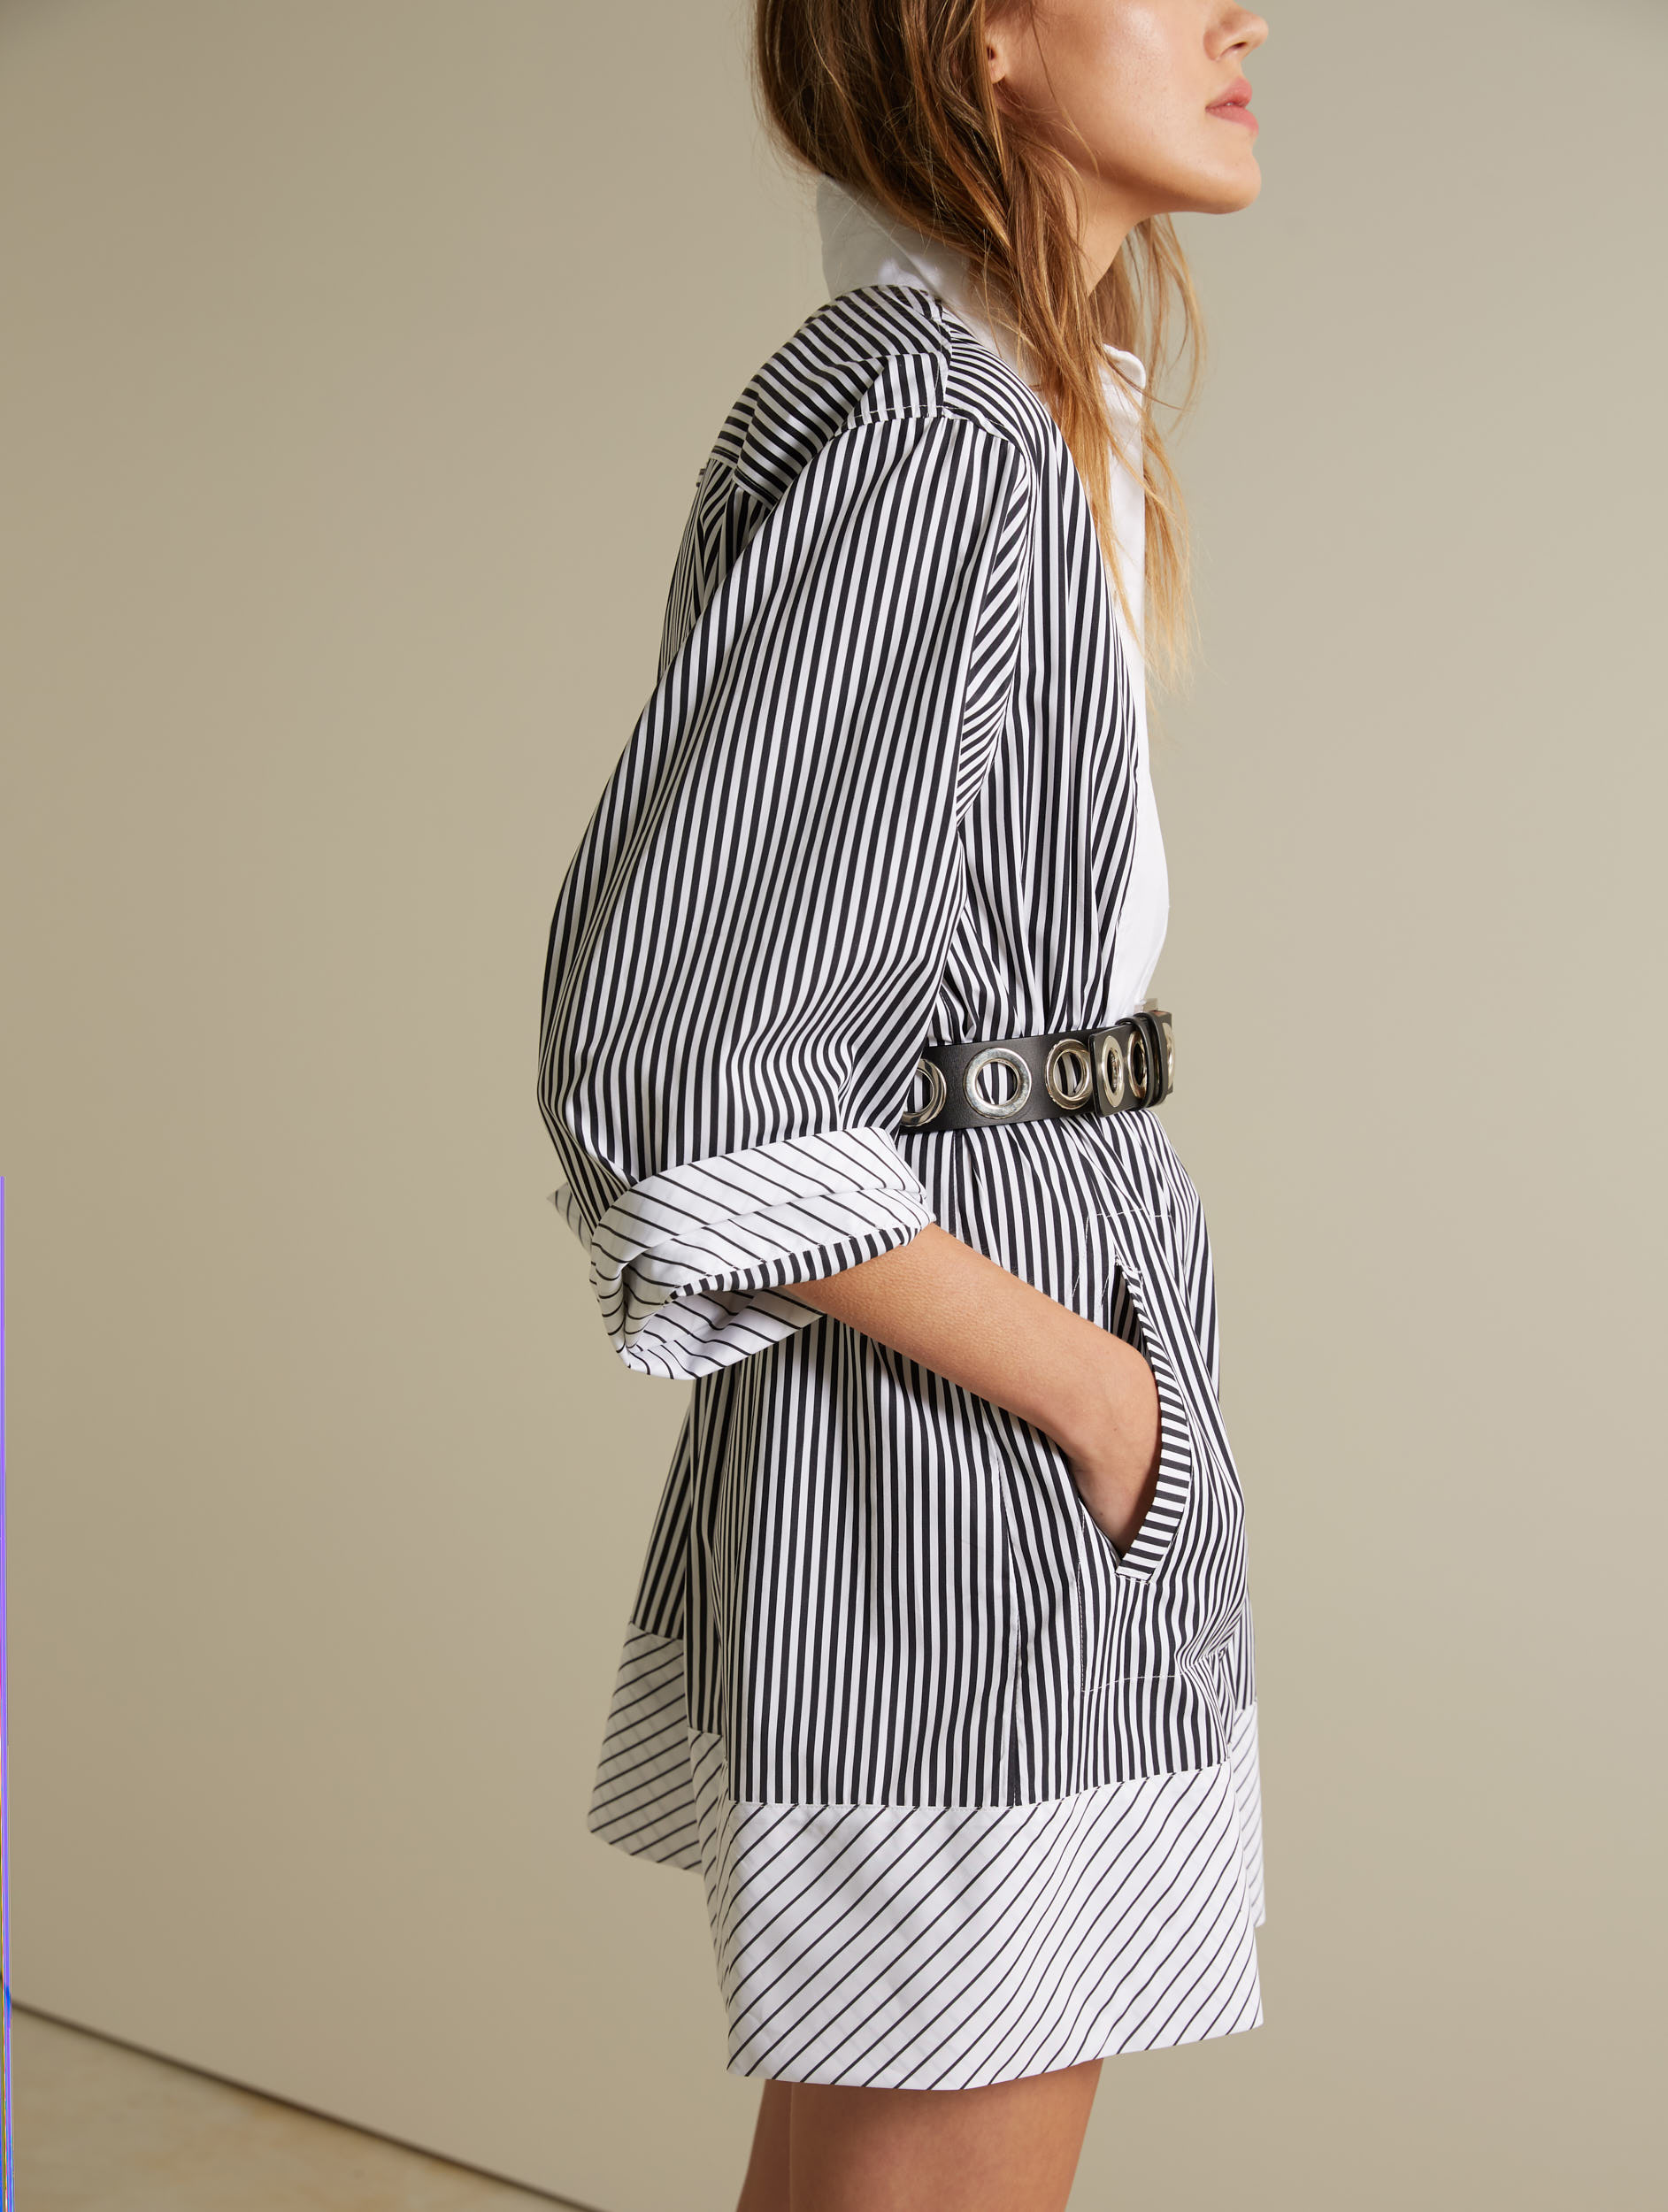 Cotton Poplin Shirtdress Barbara Bui